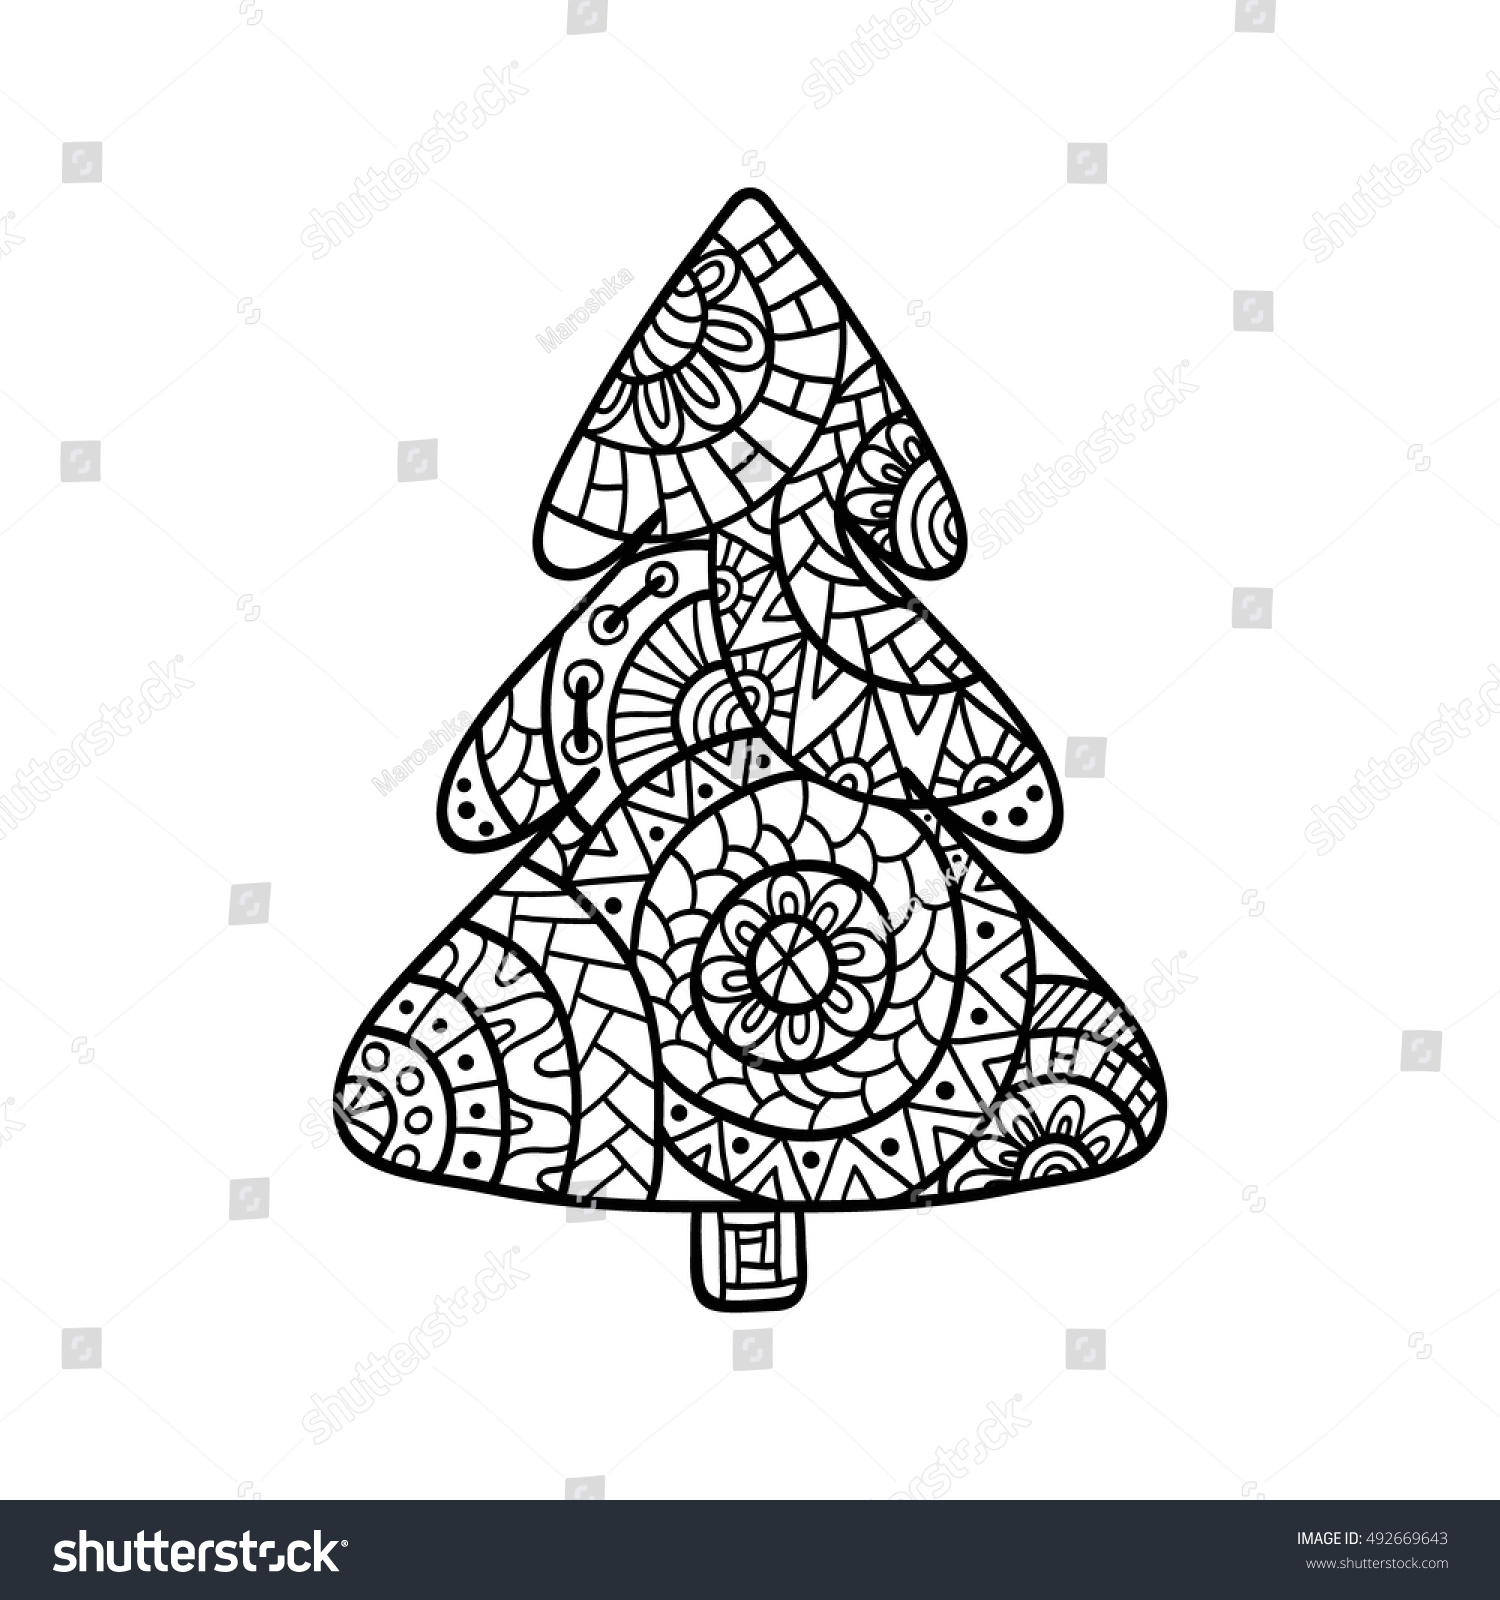 Christmas Tree Coloring Page High Details Stock Vector 492669643 ...